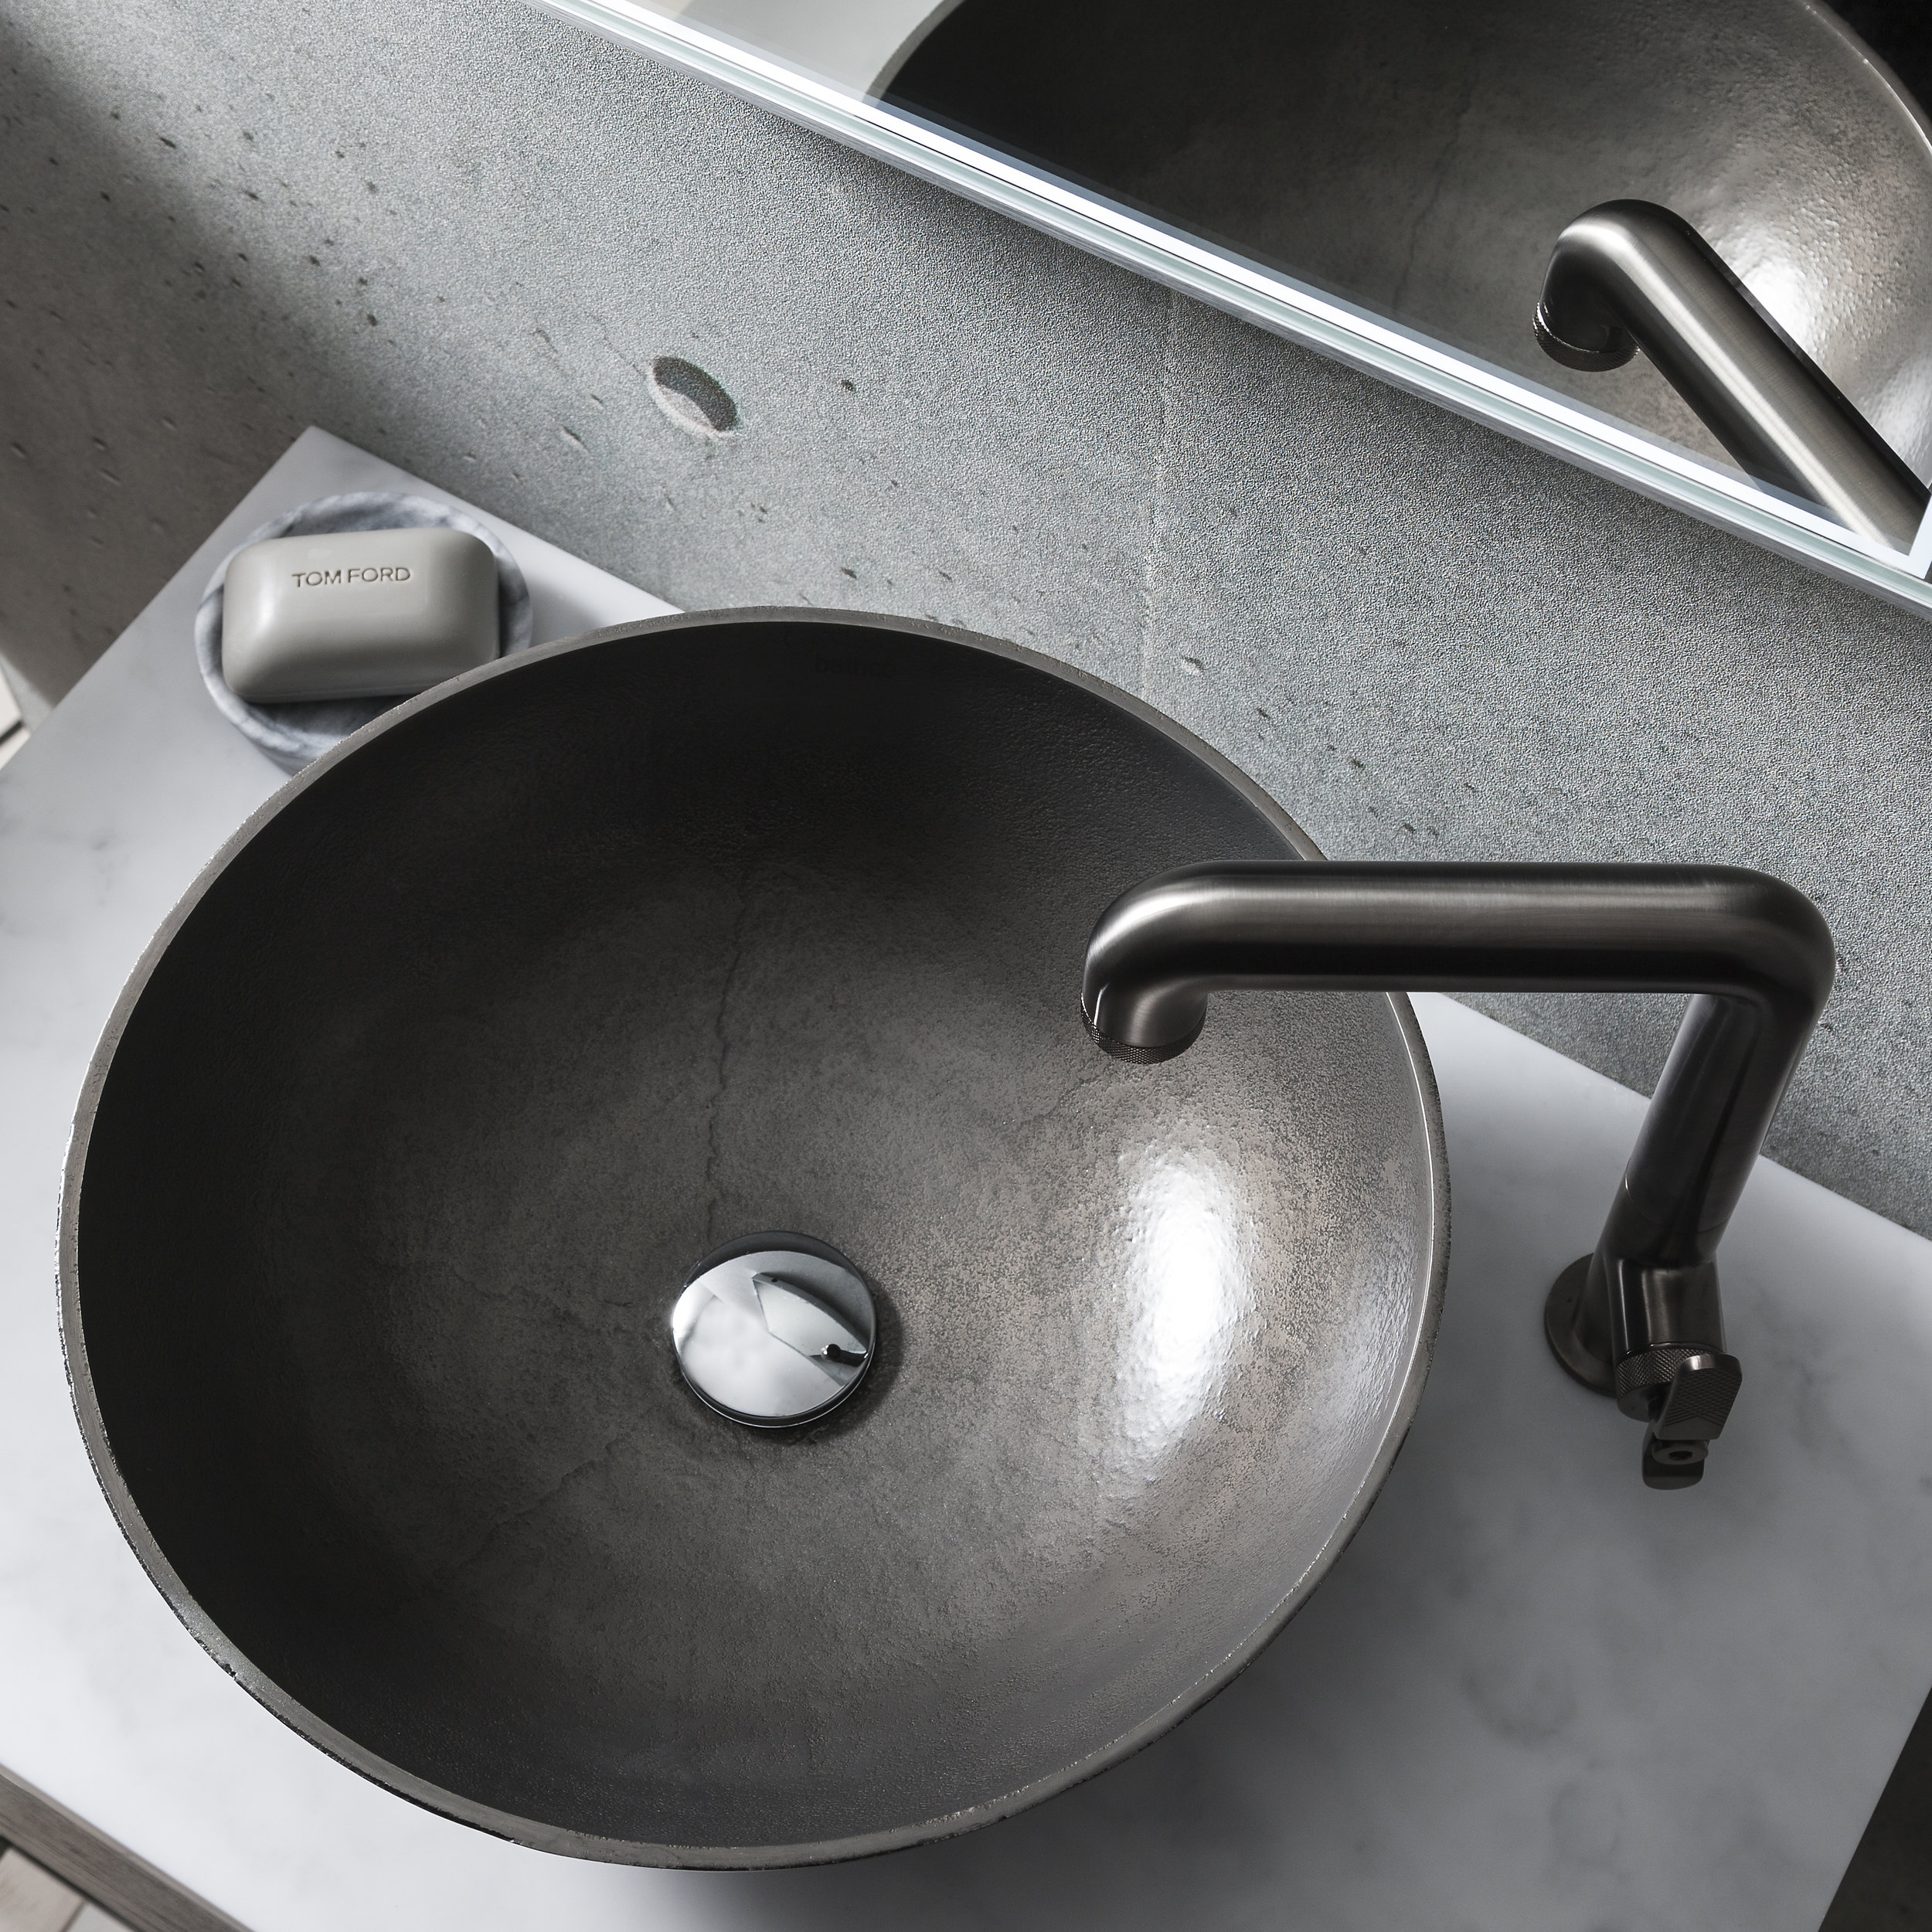 Crosswater Union Basin - If you're looking to achieve an industrial look and feel in your bathroom, the Union Basin by Crosswater will definitely tick a lot of boxes! Crafted from solid aluminium, this metallic countertop design has a textured finish and works well in both light and darker schemes.www.crosswater.co.uk